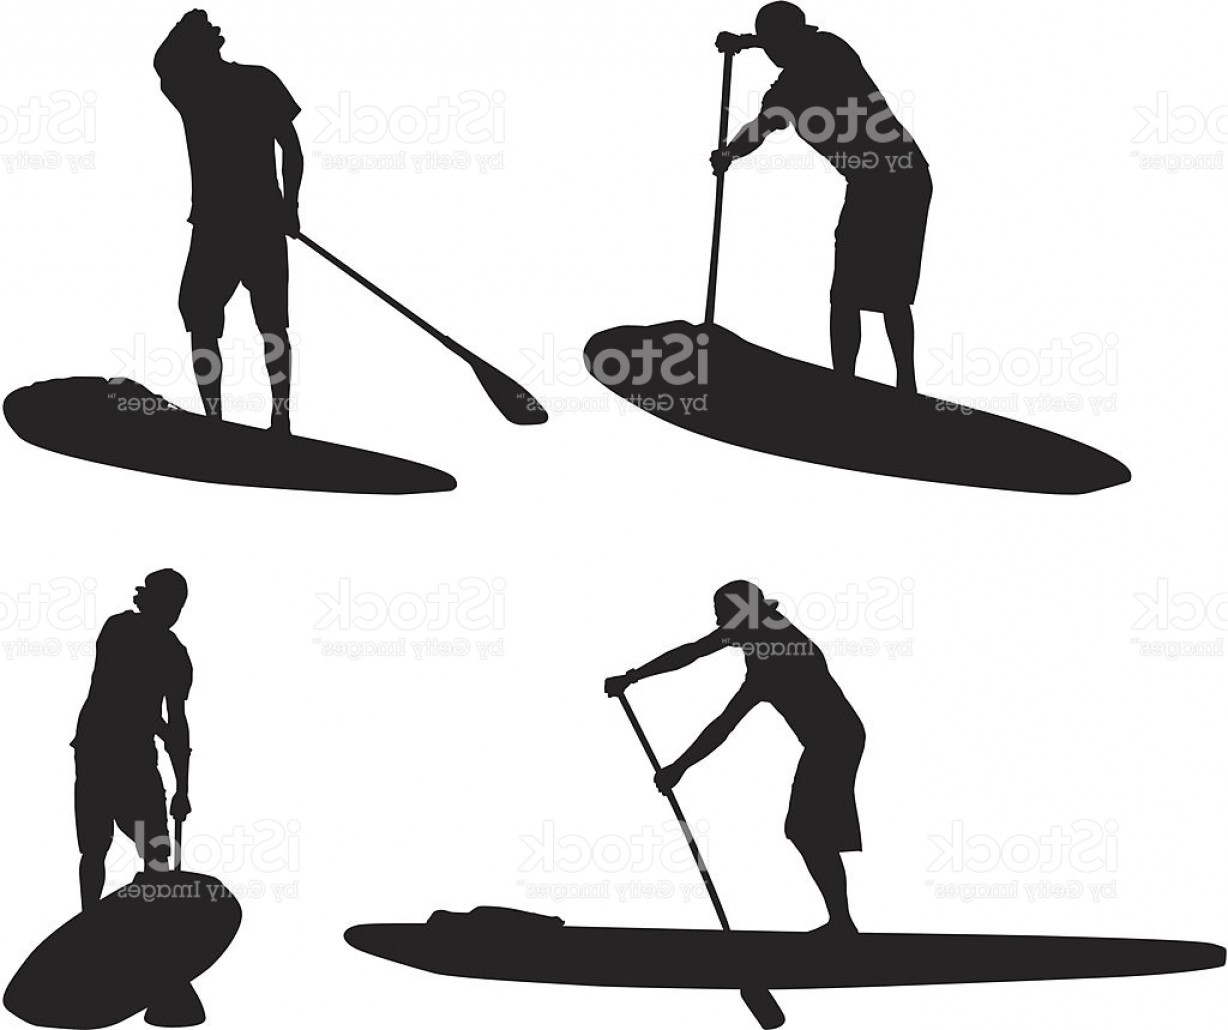 Stand Up Paddle Boarder Vector: Multiple Silhouettes Of Man On Paddleboard Gm